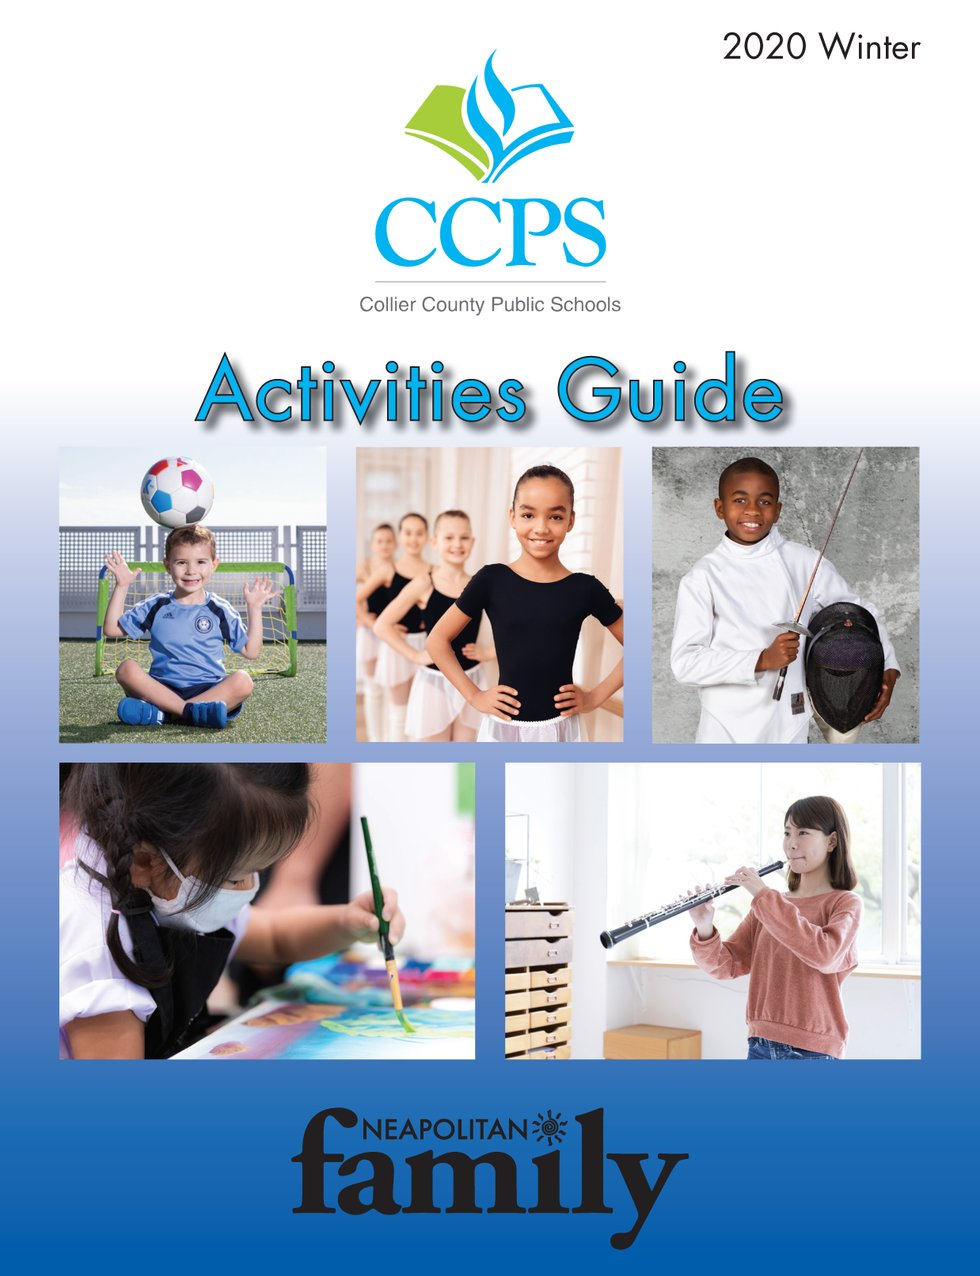 Fall 2020 CCPS Activities Guide